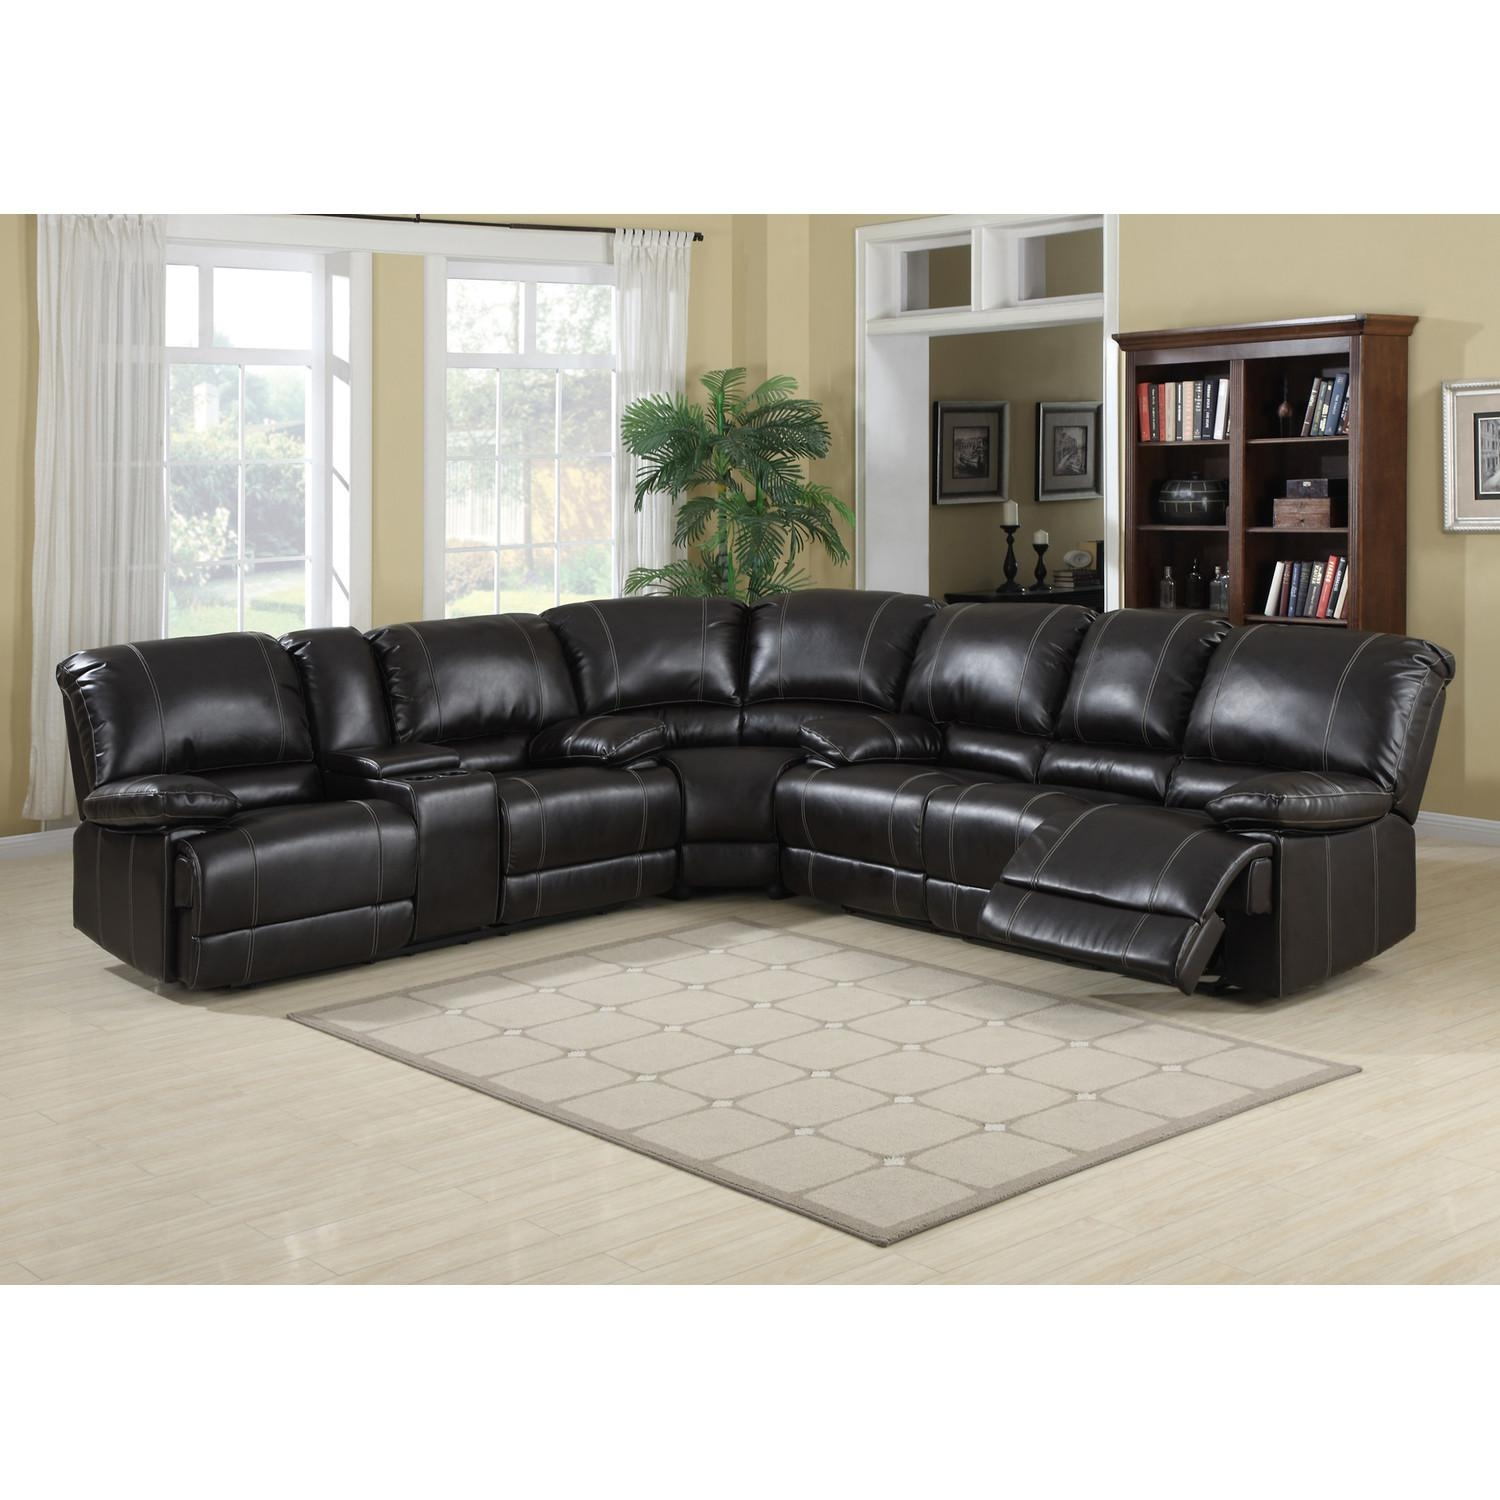 Furniture: Beautiful Sectional Sofas Cheap For Living Room Pertaining To Cheap Reclining Sectionals (Image 4 of 15)